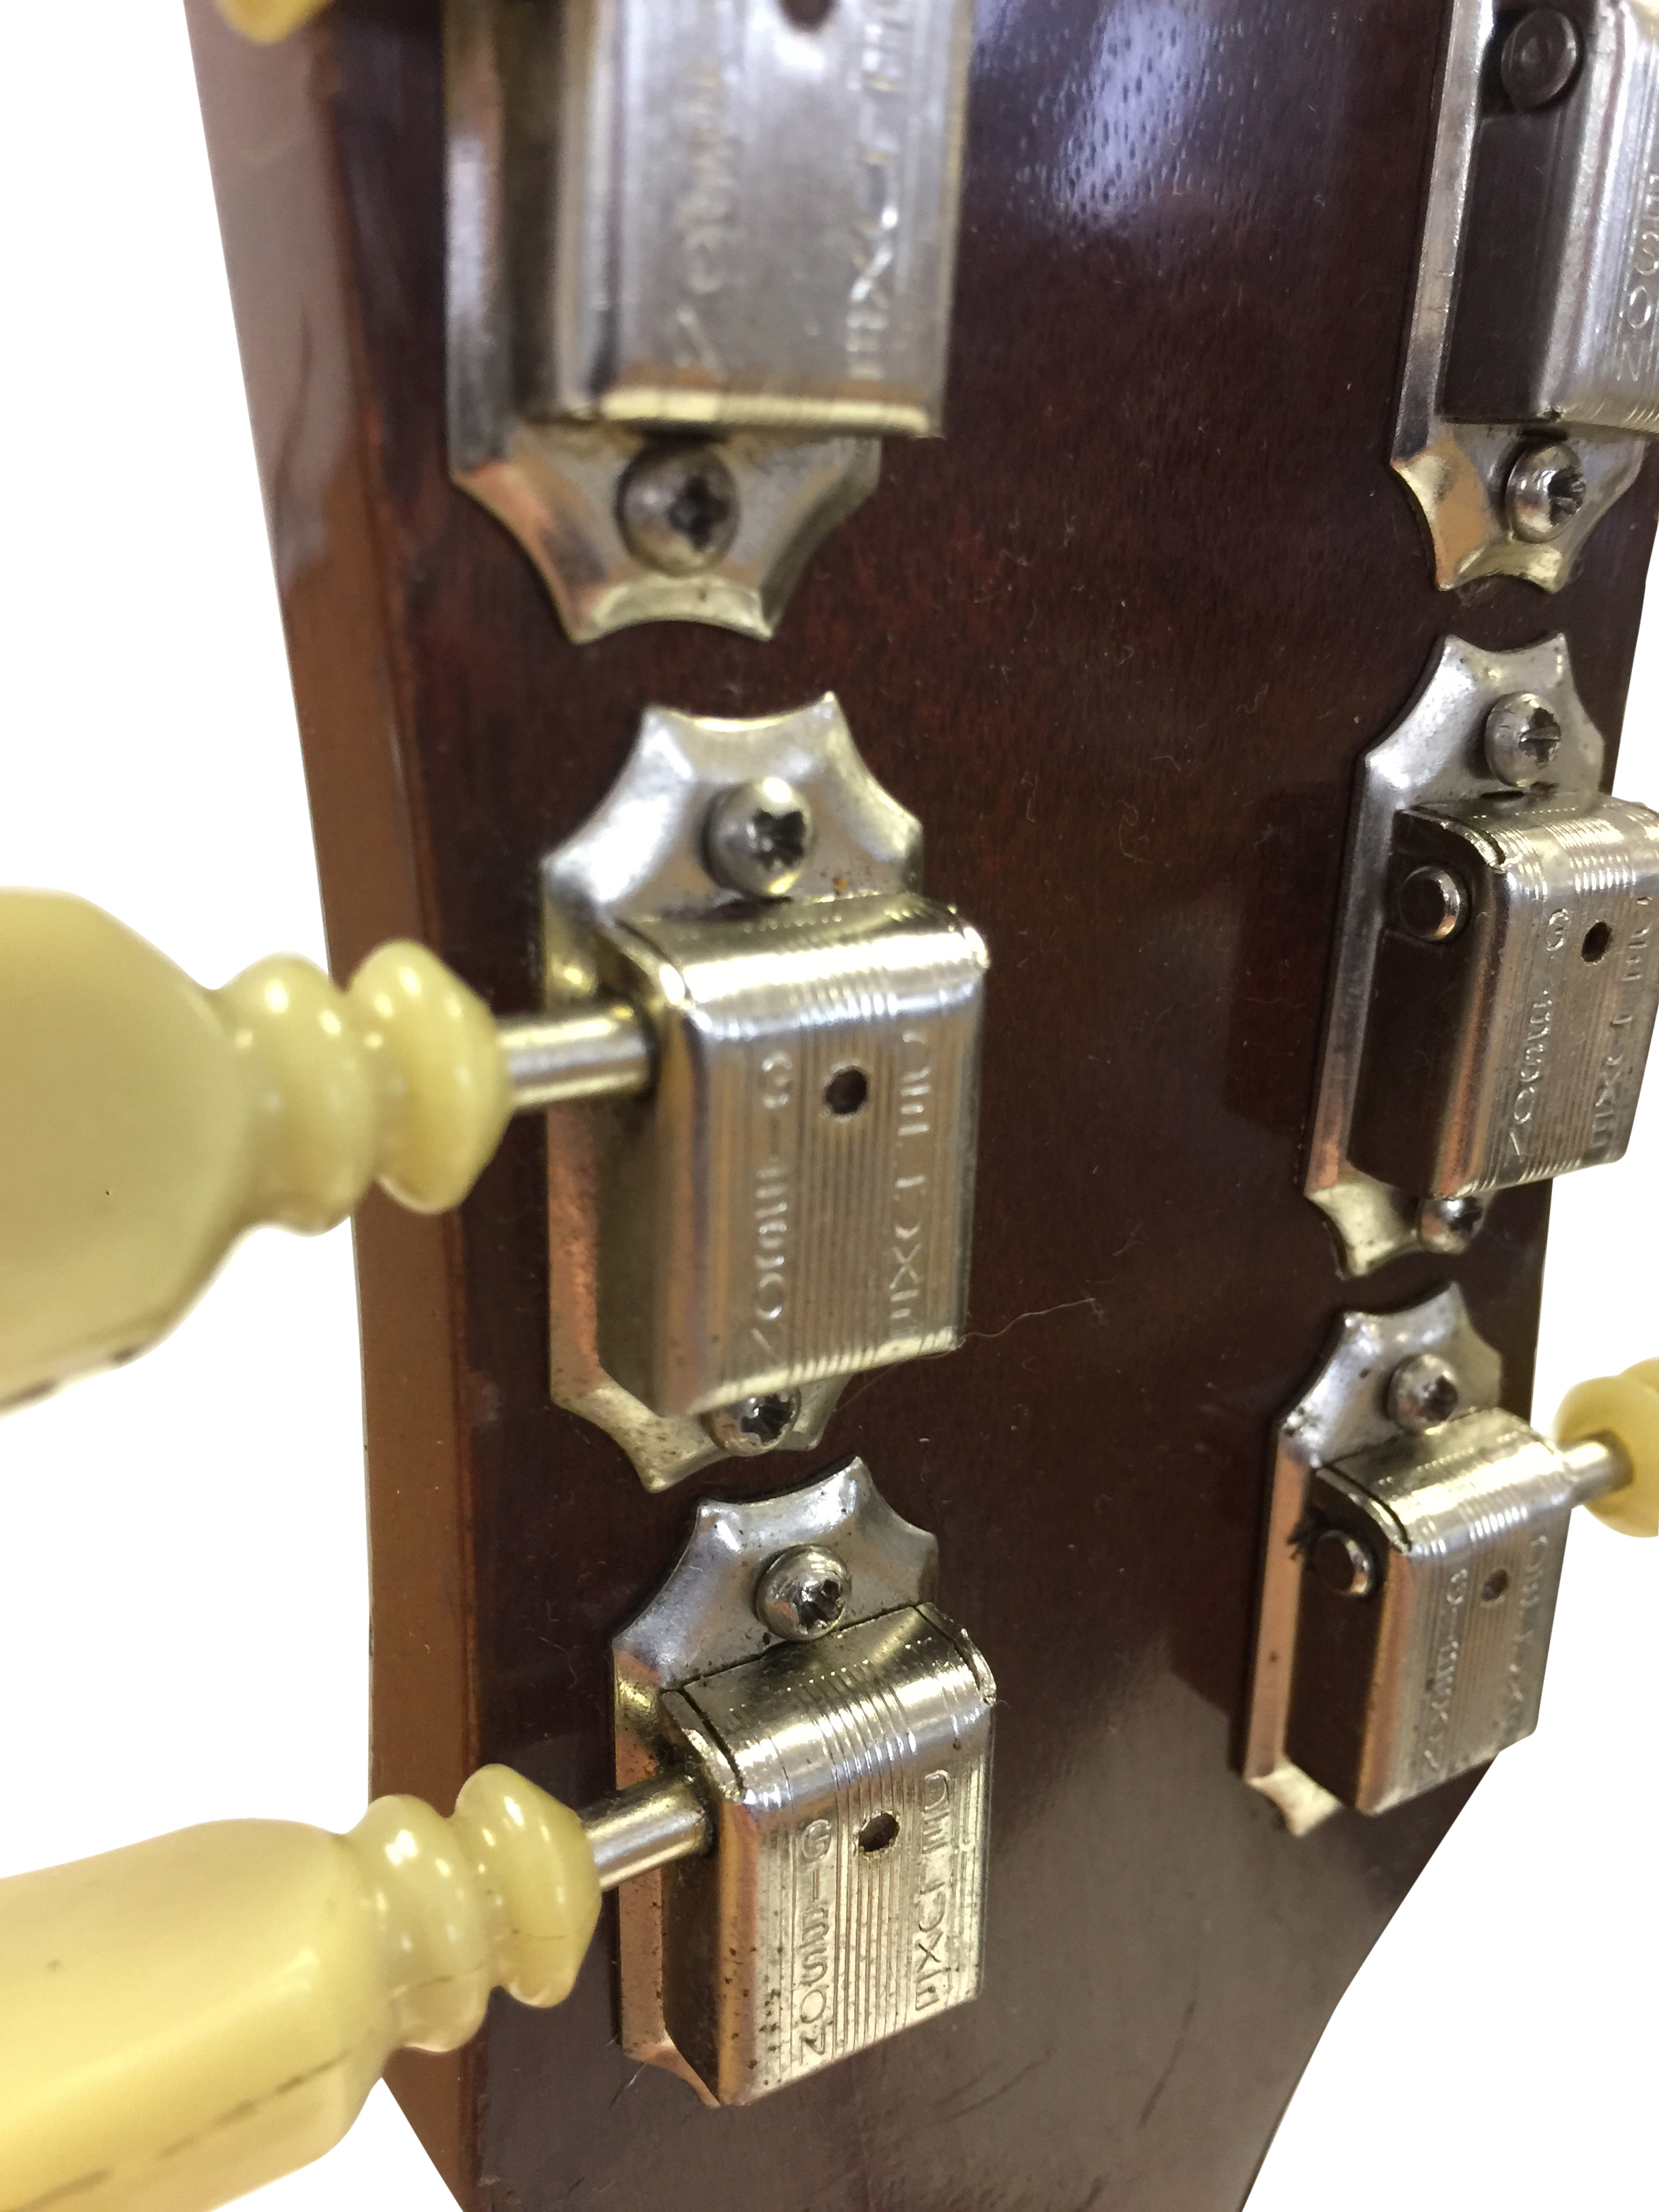 Lot 17 - GIBSON LES PAUL GOLDTOP 1969 ELECTRIC GUITAR. With a 59' neck and pickups.